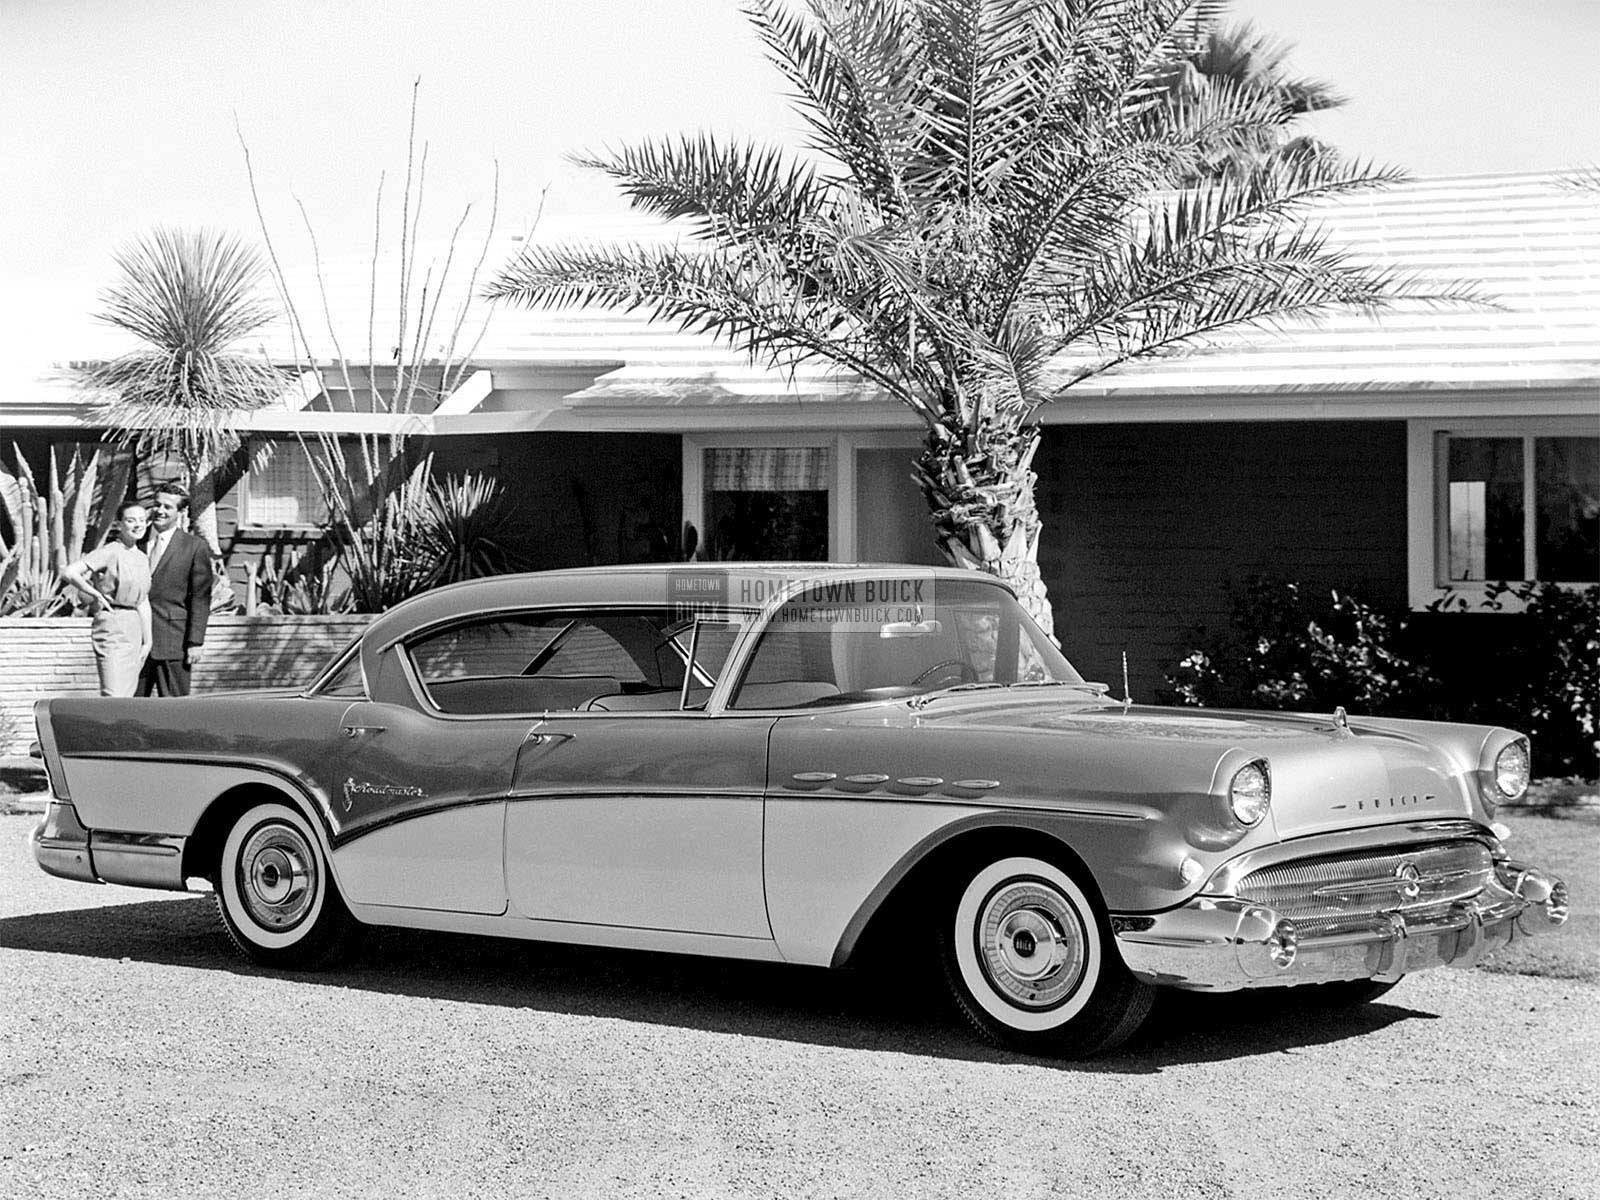 1957 Buick Model Year